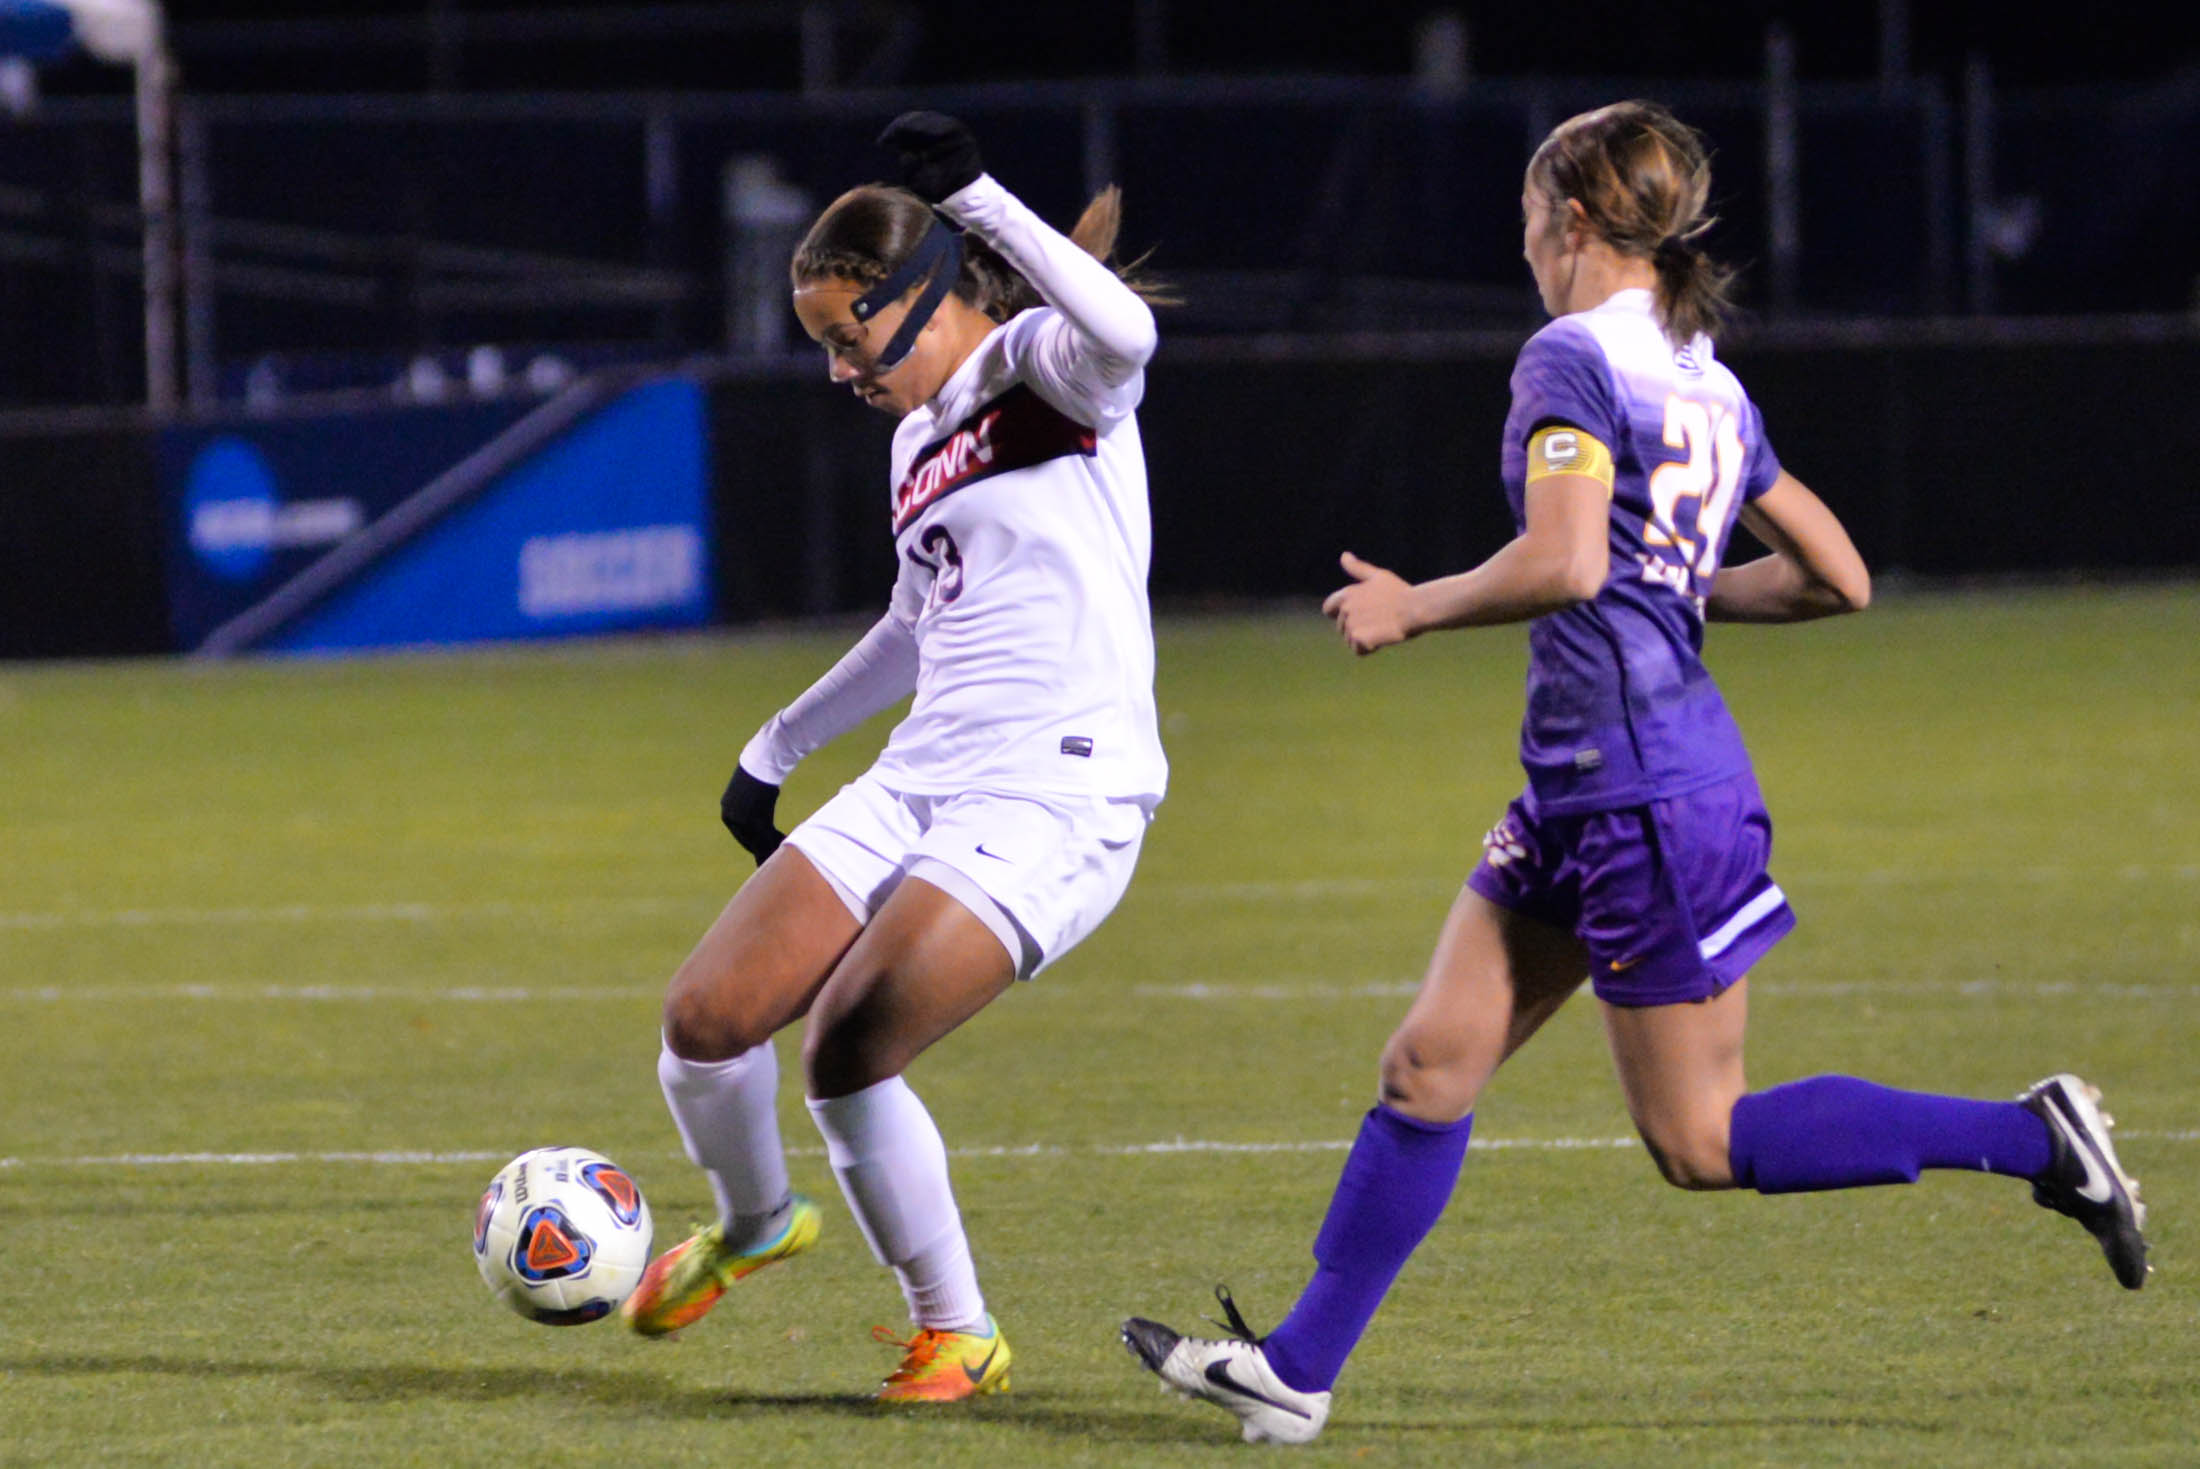 Defender Toriana Patterson (13) avoids UAlbany midfielder Caitlyn Paltsois (24) during the Huskies 4-2 victory over the Great Danes at Morrone Stadium on Saturday, Nov. 12, 2016. (Amar Batra/The Daily Campus)